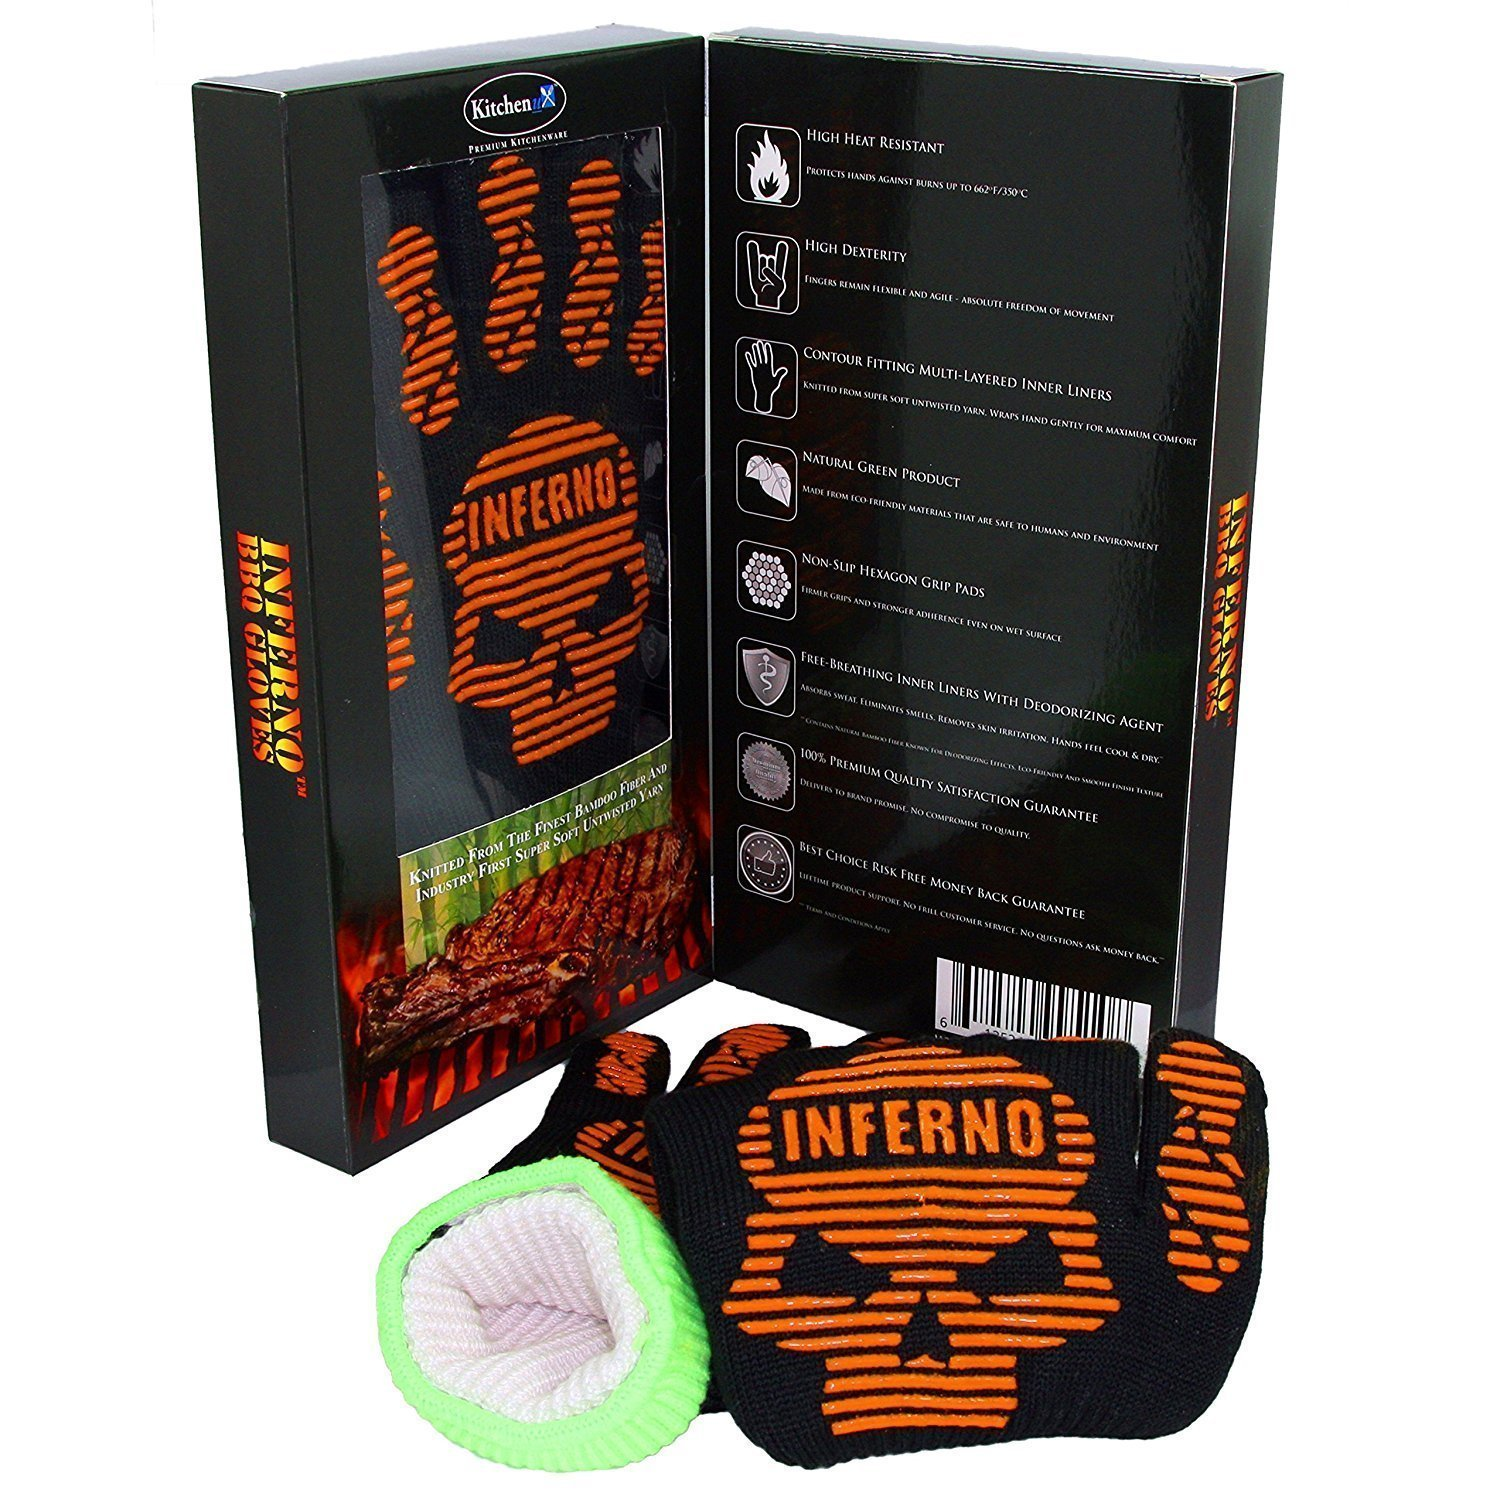 Heat Resistant Barbecue Gloves, Kitchenux Brand Inferno-IBG-L Grilling Gloves